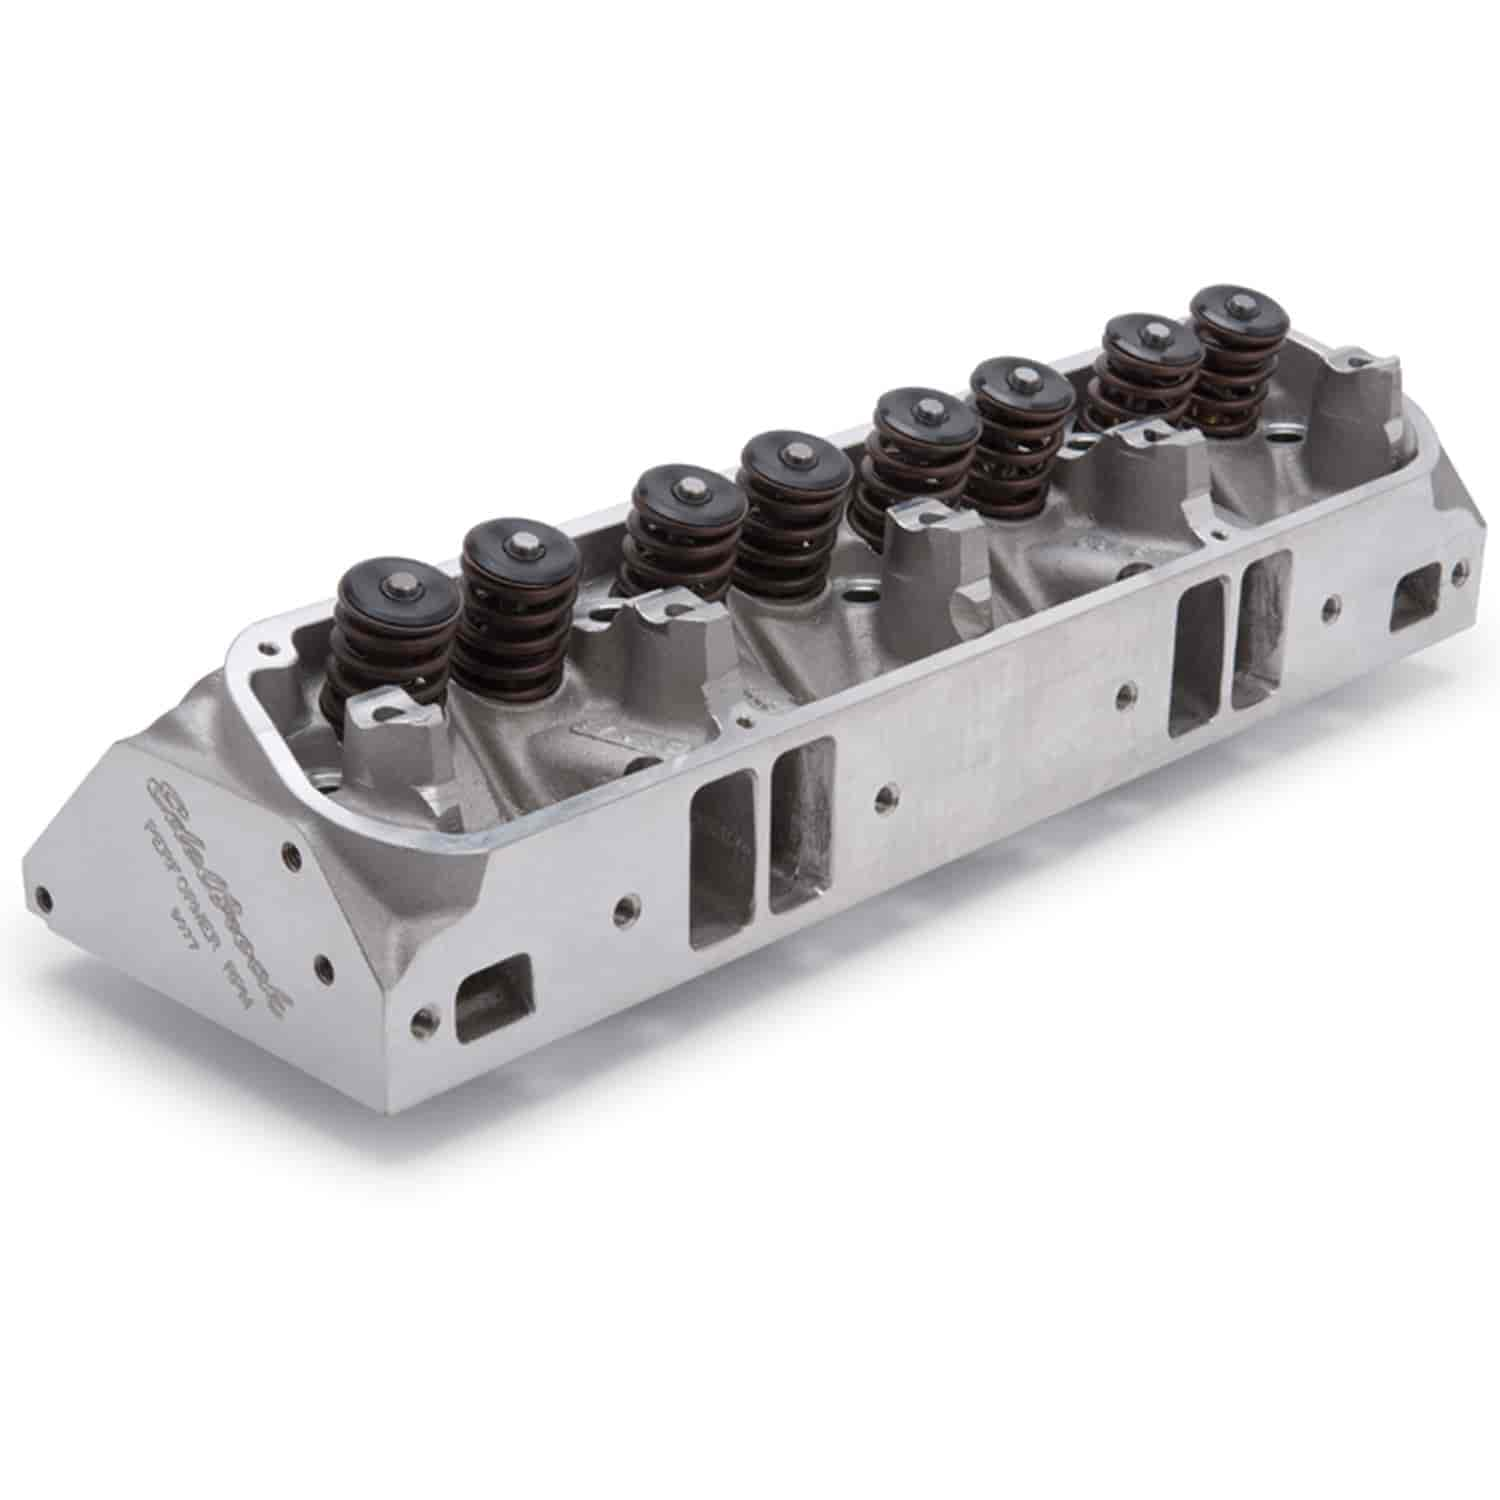 Edelbrock 60779 - Edelbrock Small Block Chrysler Performer RPM Cylinder Heads